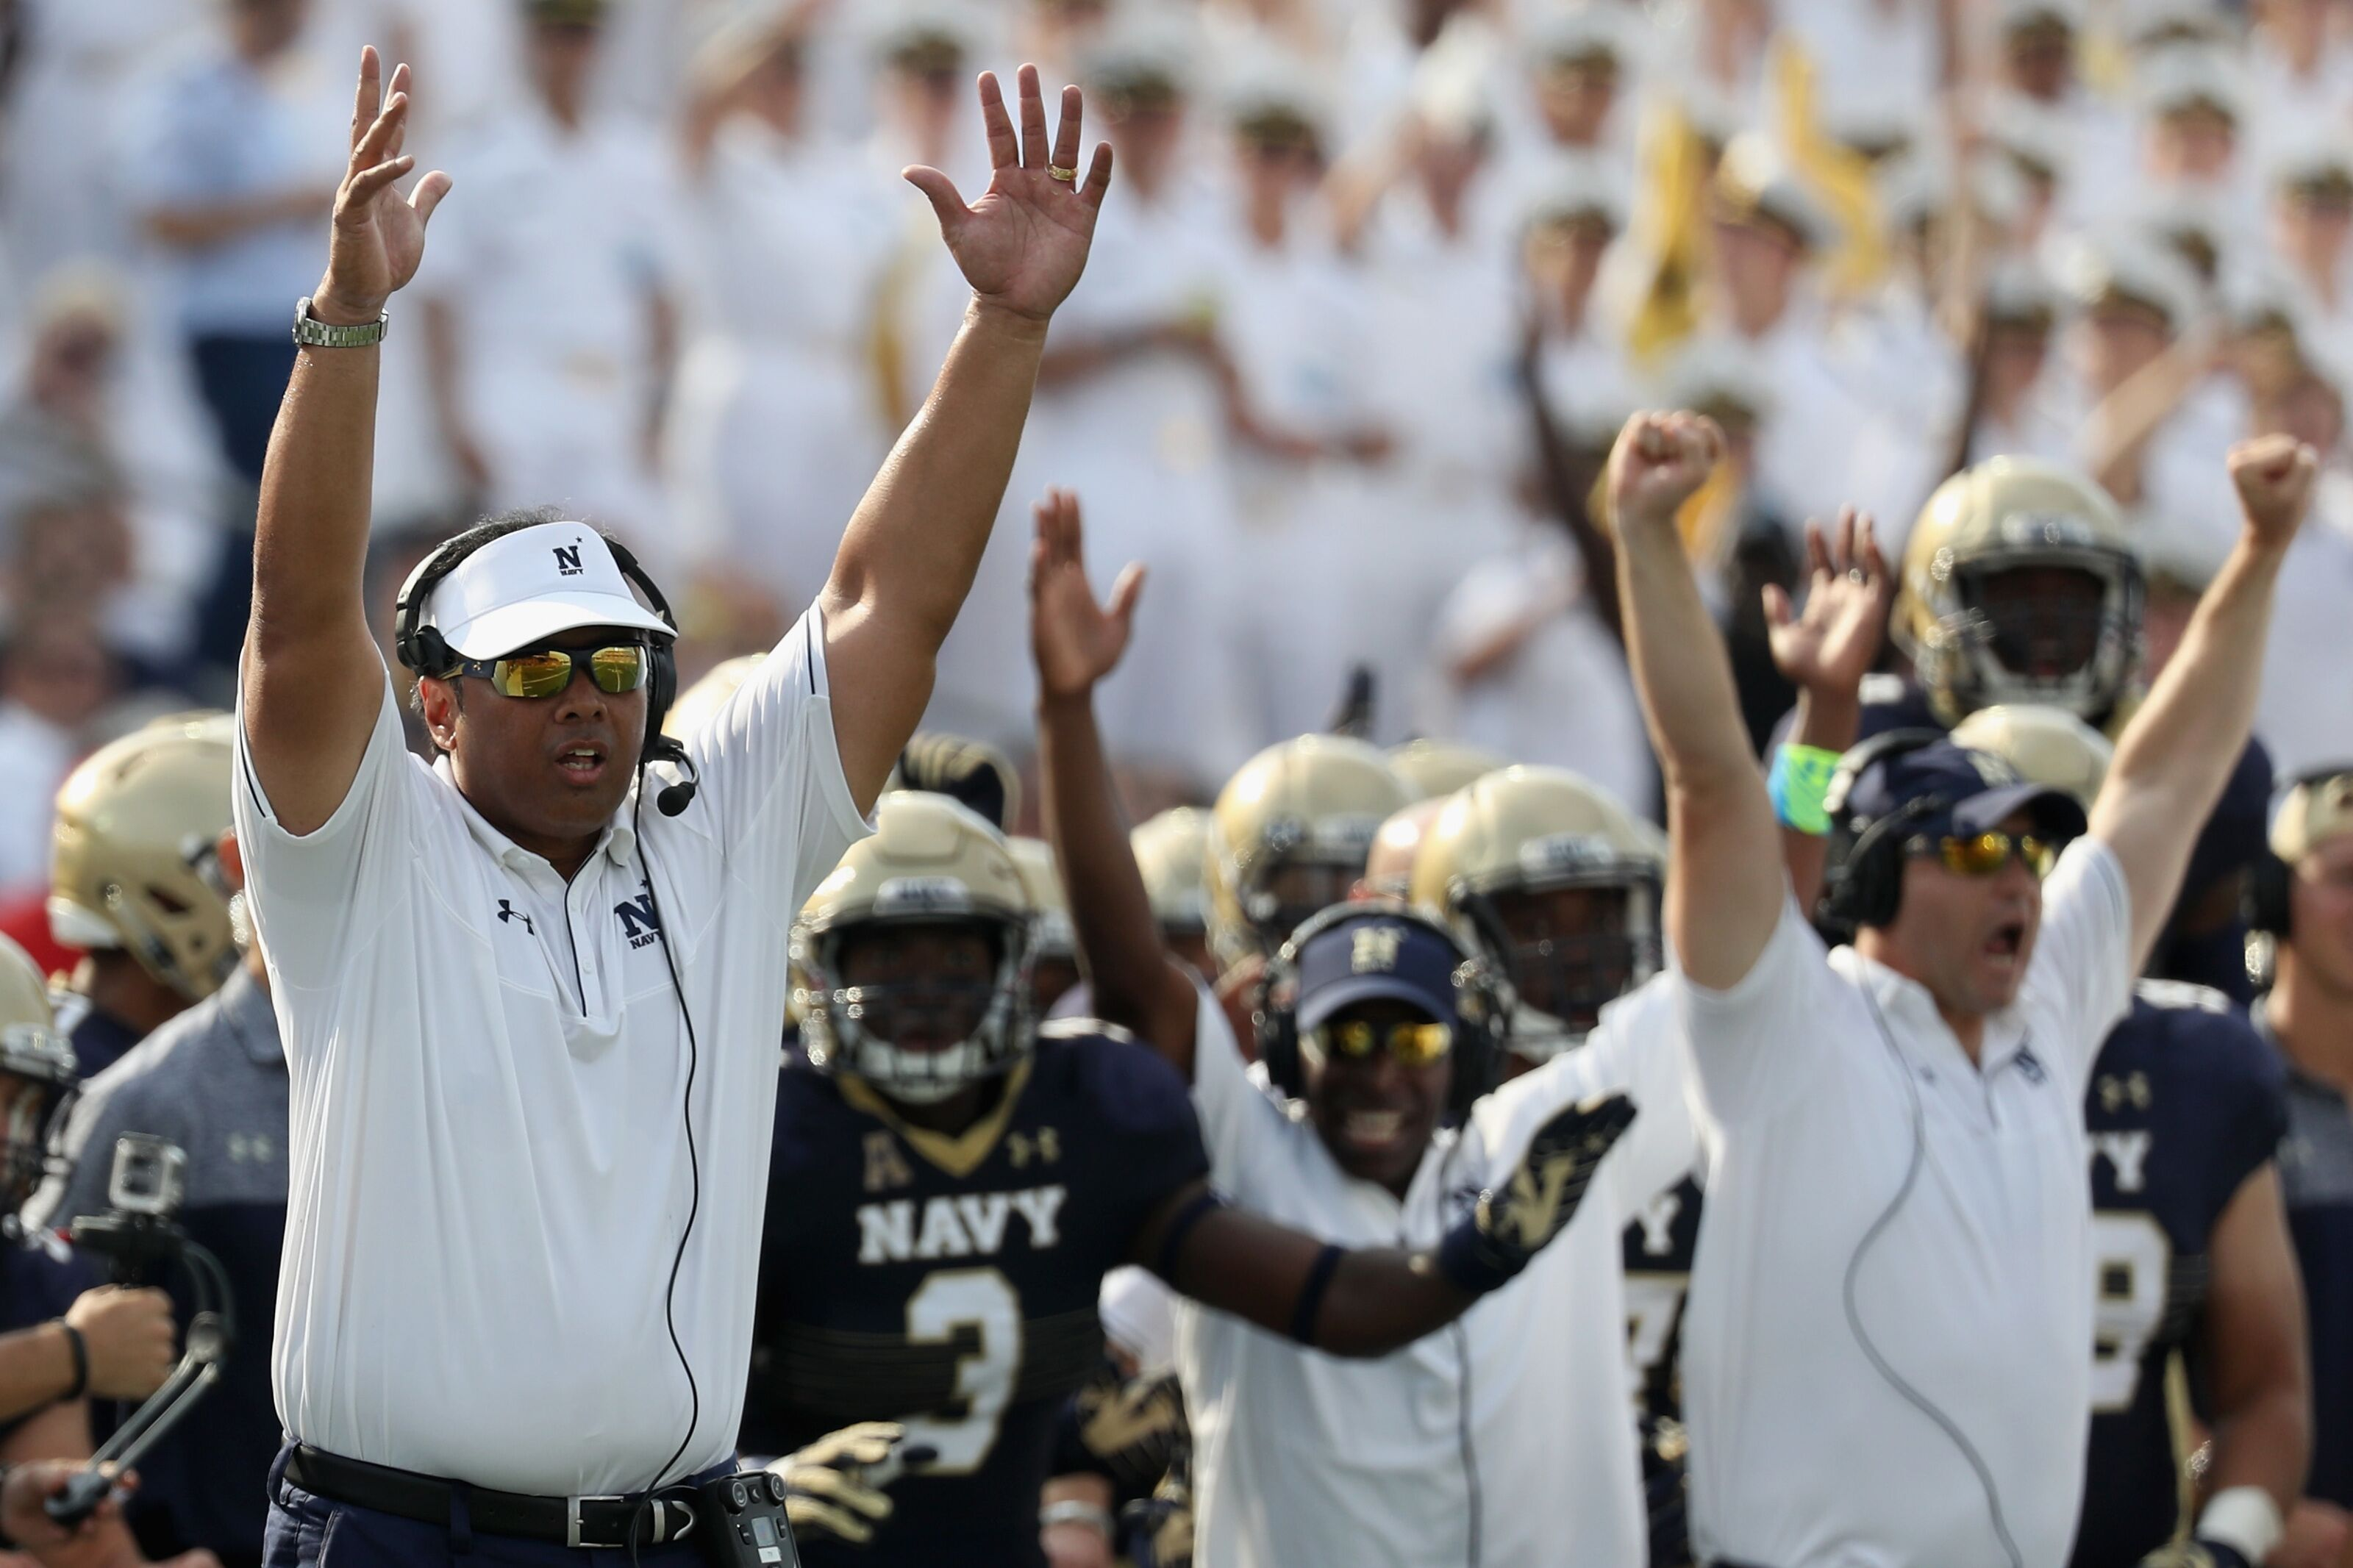 Know Your Notre Dame Football Enemy: Navy